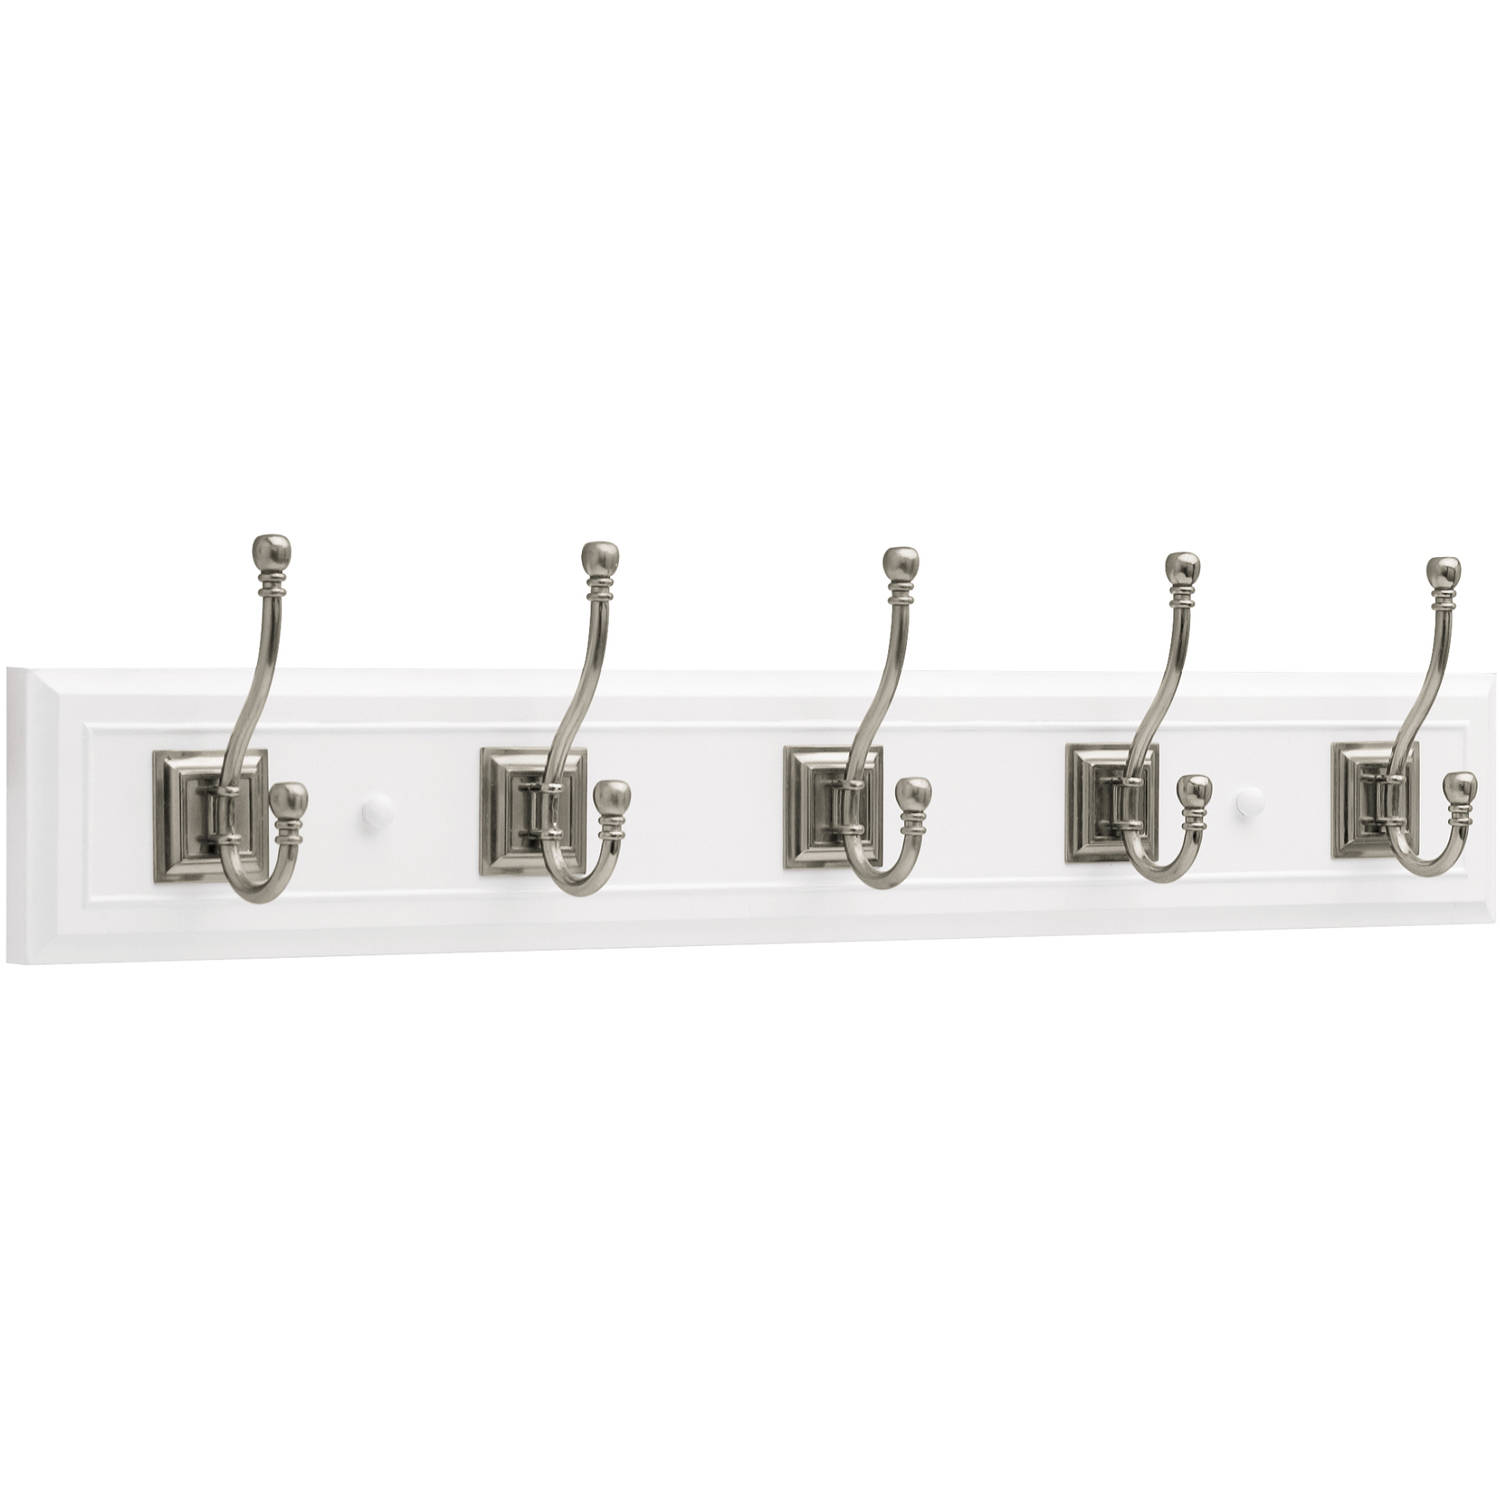 "Brainerd 27"" Architectural Rail with 5 Architectural Hooks, Flat White and Satin... by Generic"